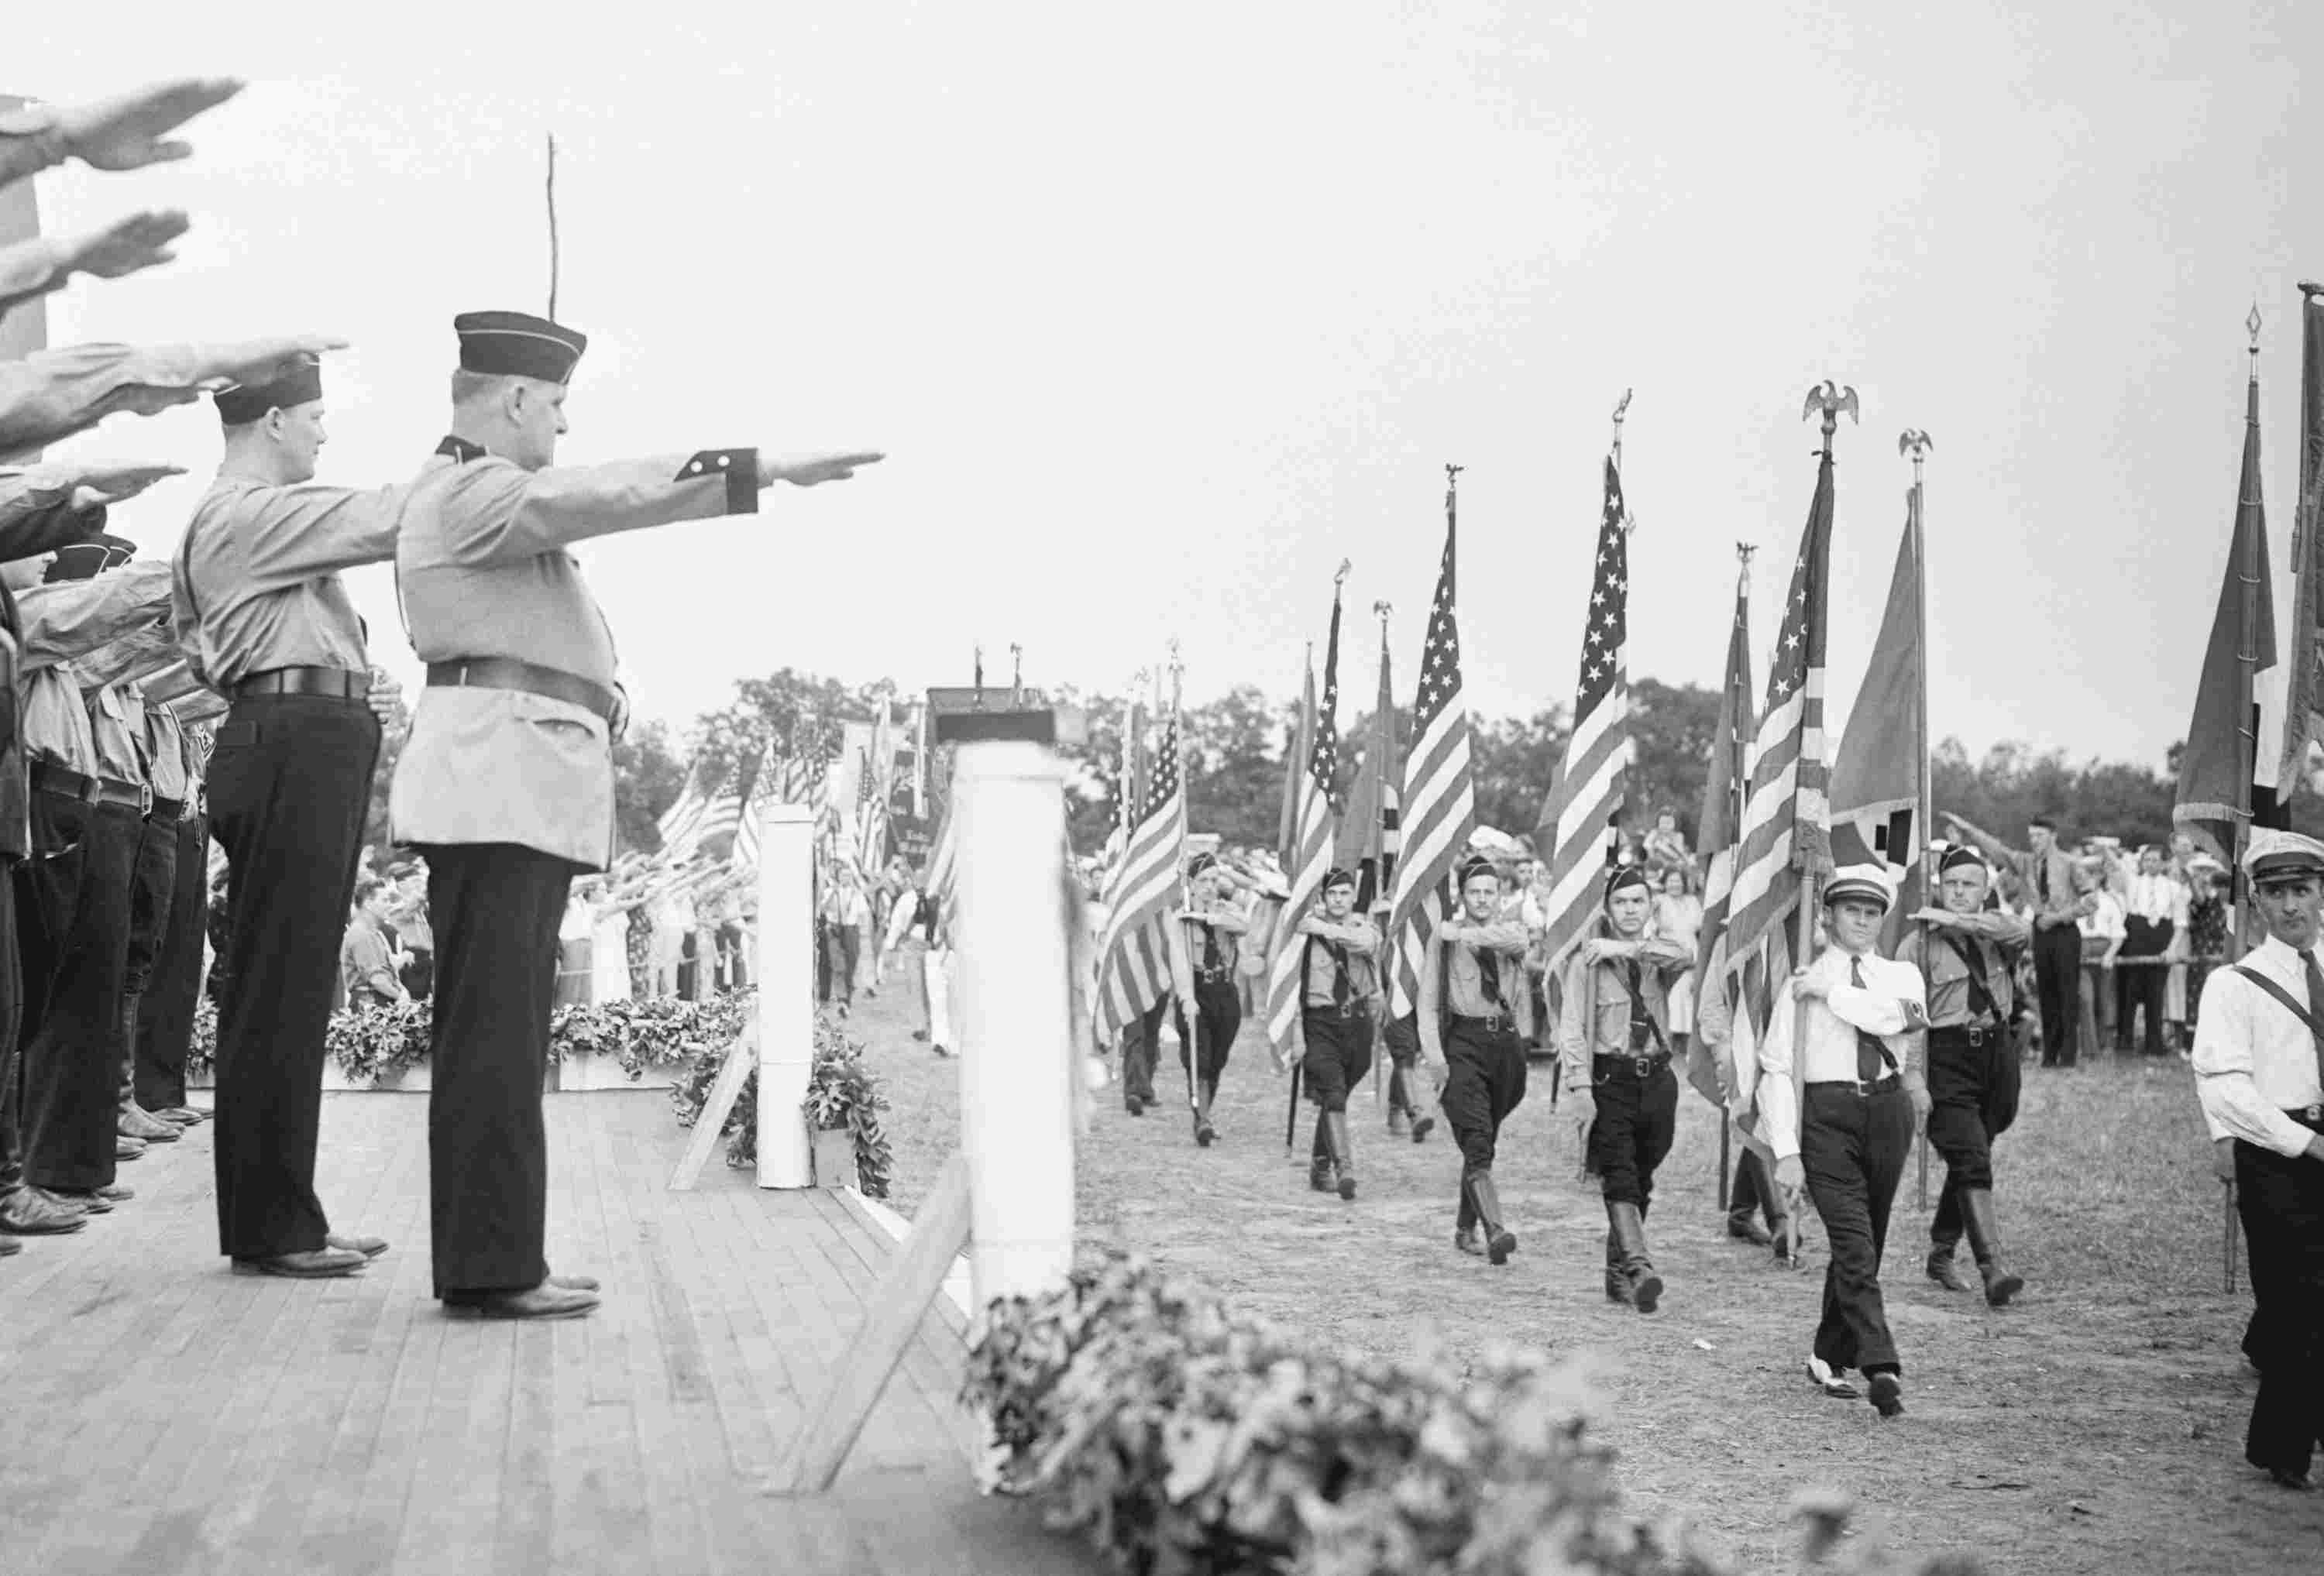 Photo of German American Bund parading at camp in New Jersey.